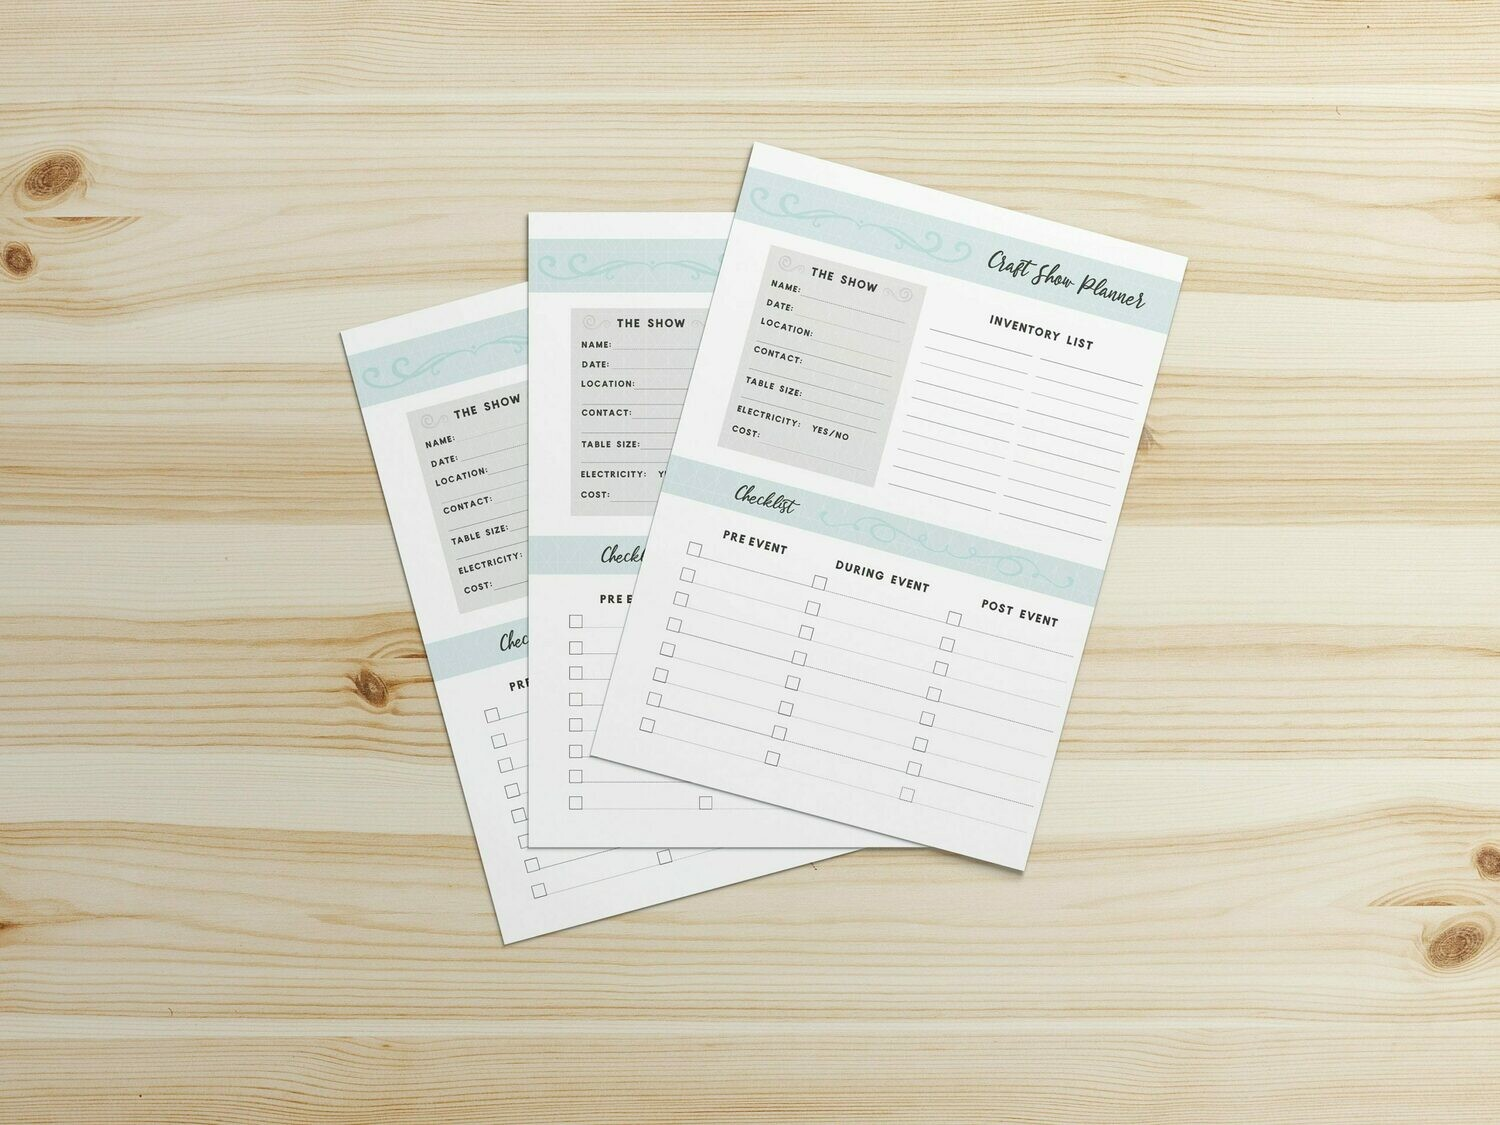 Craft Show/Craft Fair Planner